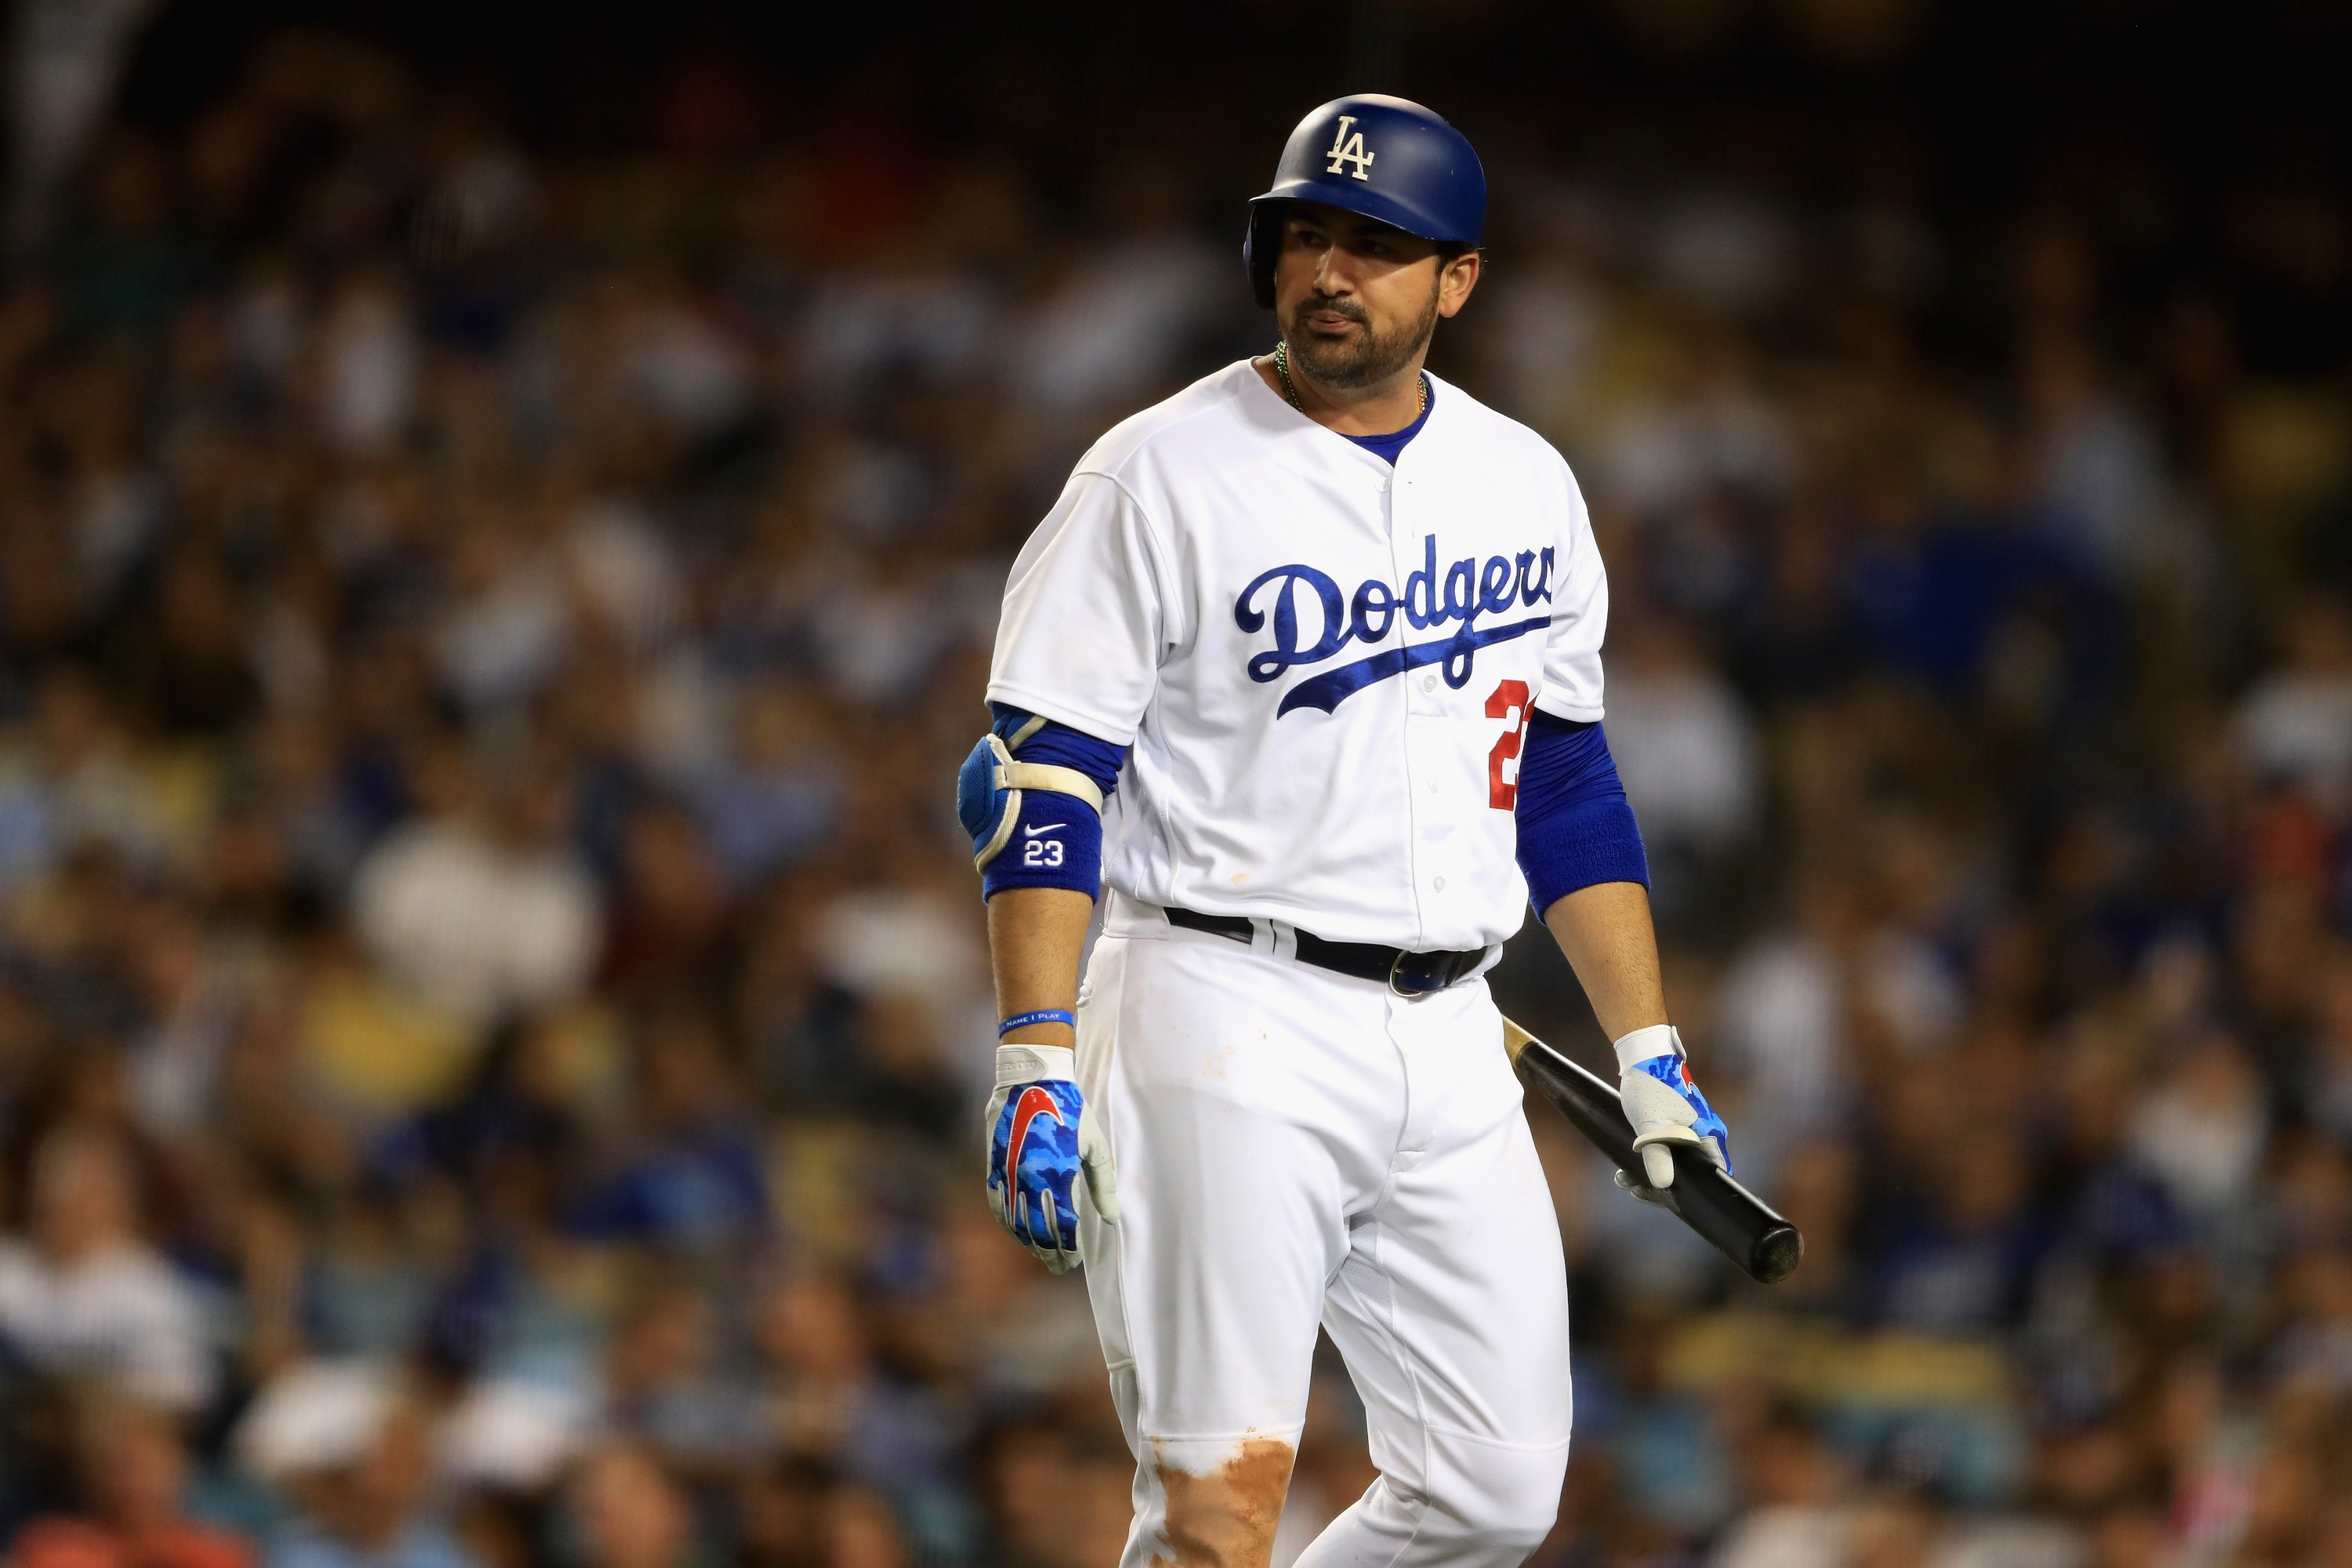 Dodgers will leave $22-million man Adrian Gonzalez off playoff roster